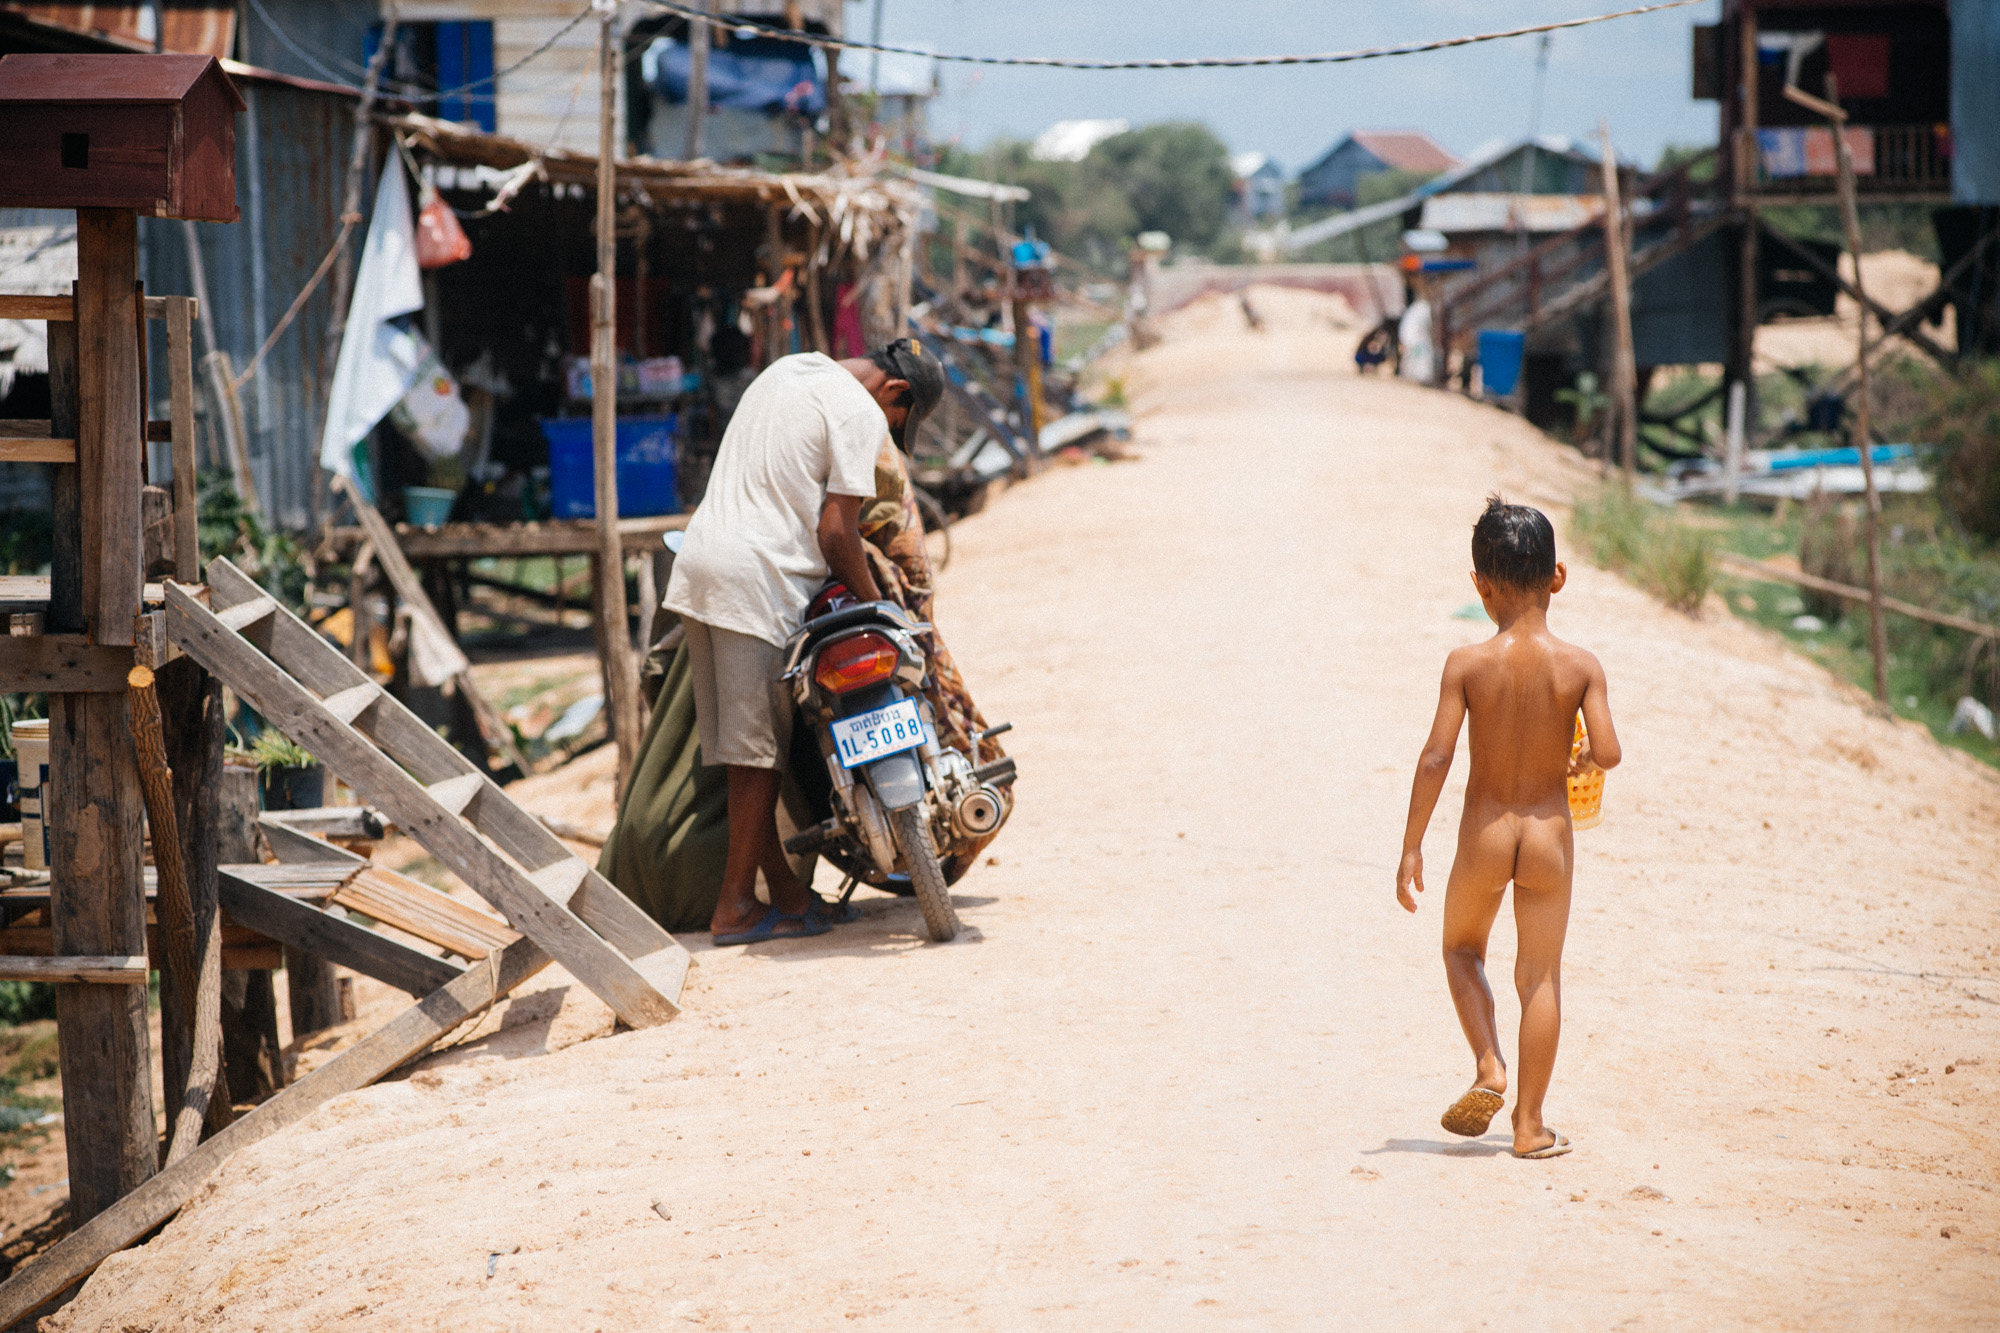 After cooling himself off with a hose in the hot 35˚C, a boy walks back home. Children often run around completely naked in the countryside of Cambodia.